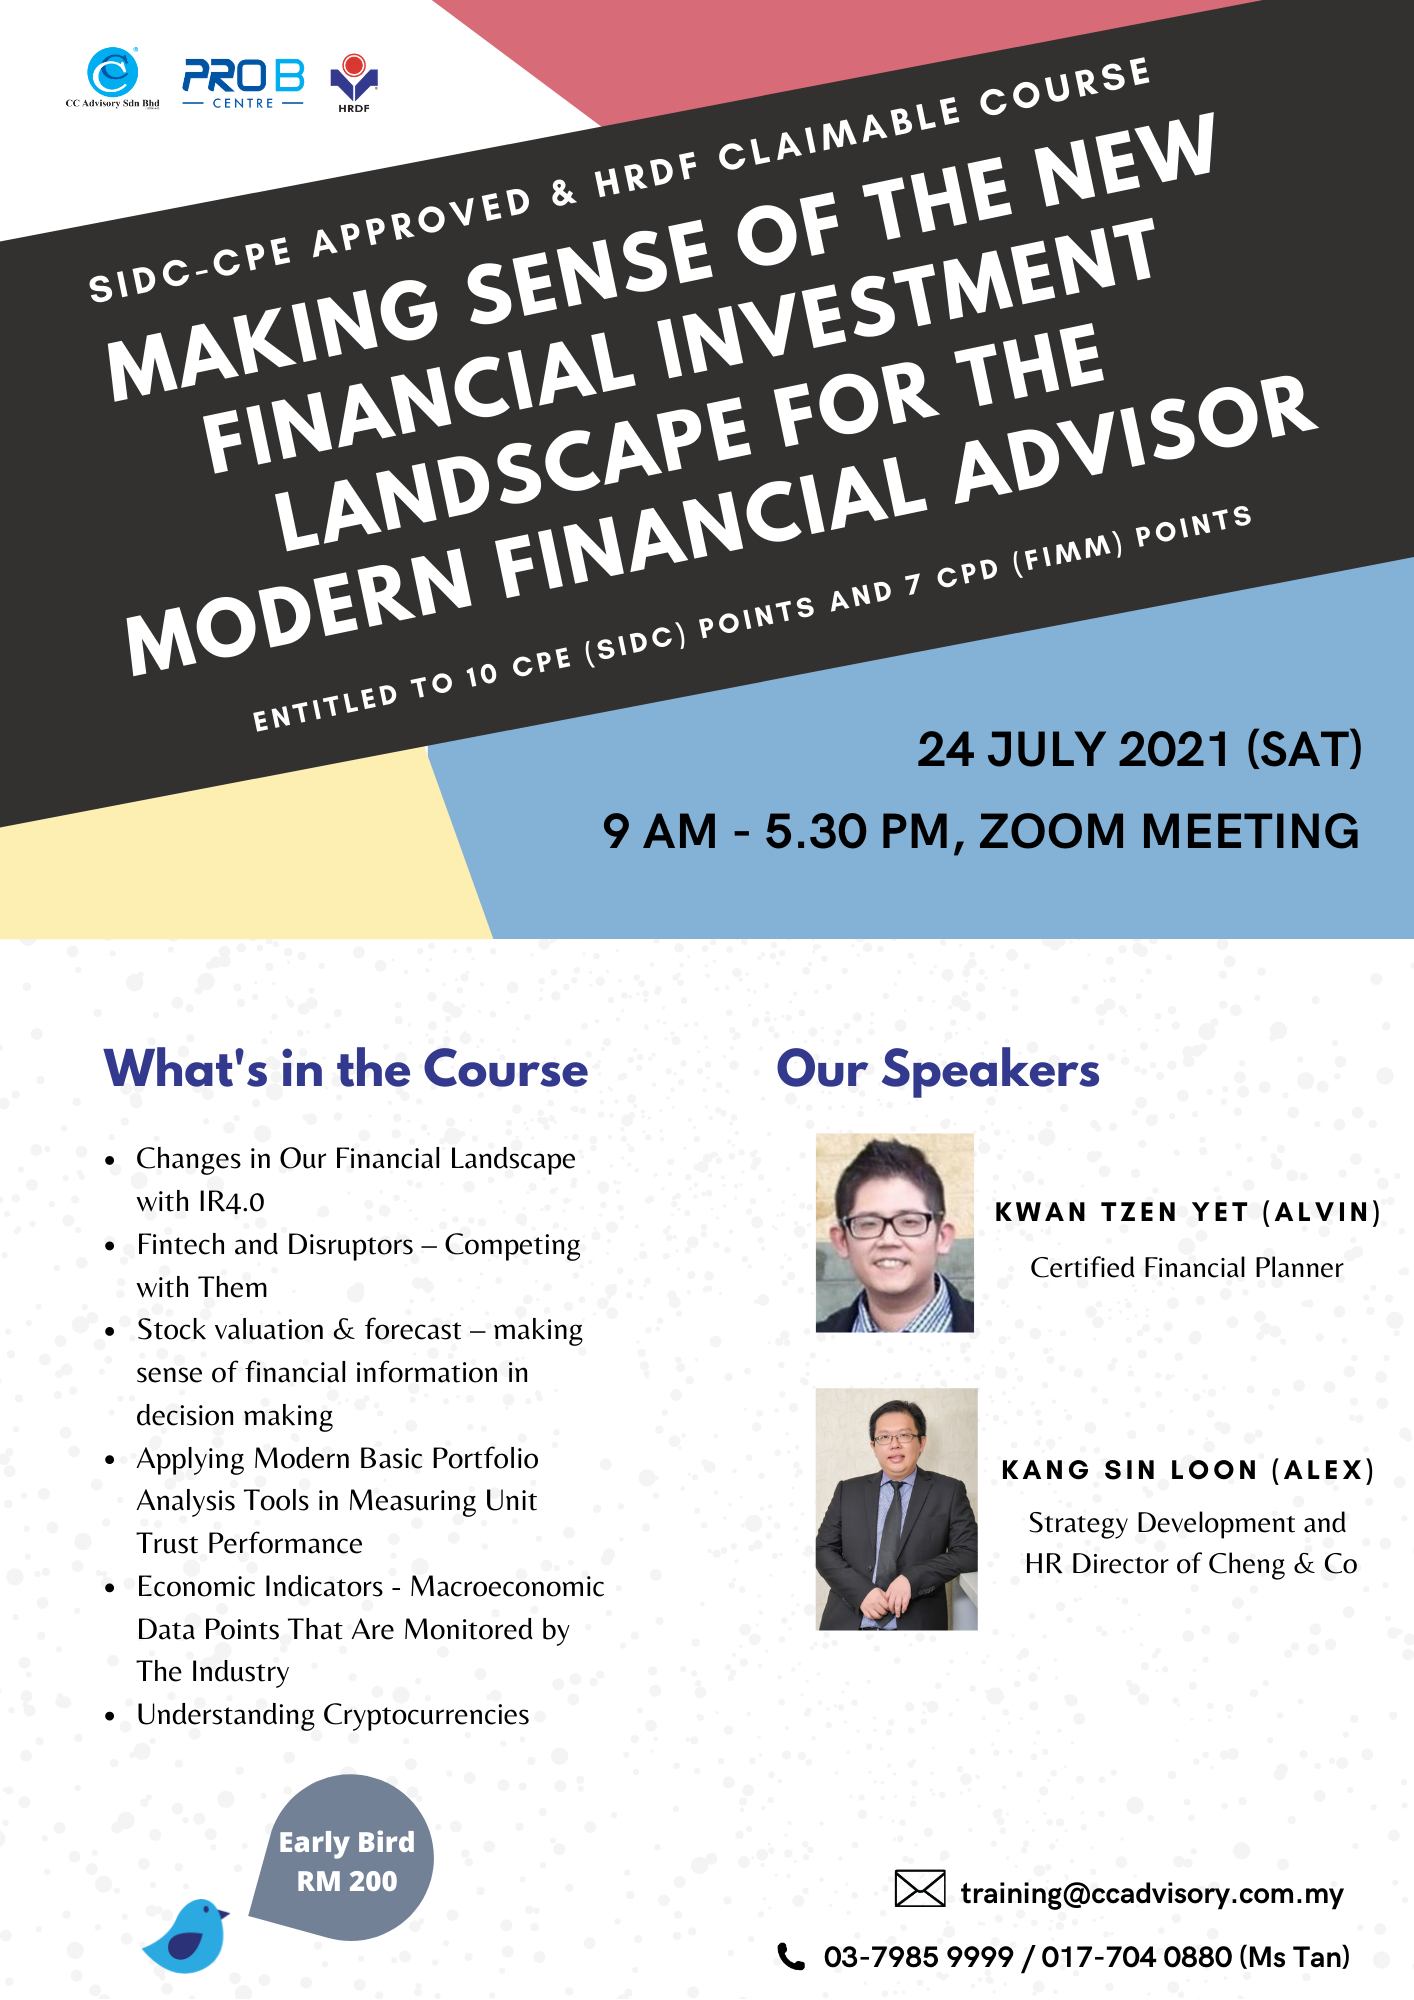 Making Sense of The New Financial Investment Landscape For The Modern Financial Advisor